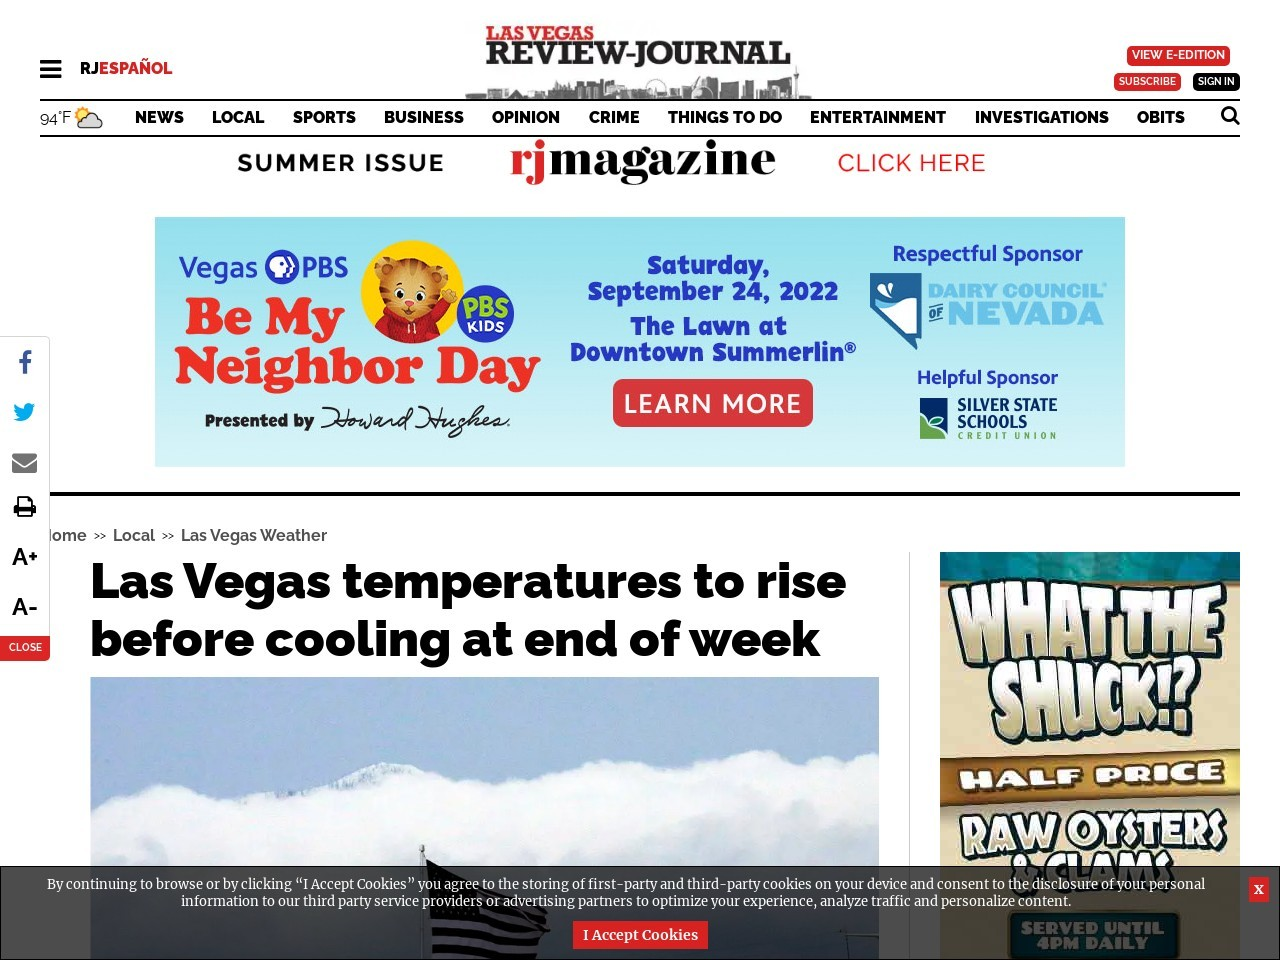 Las Vegas temperatures to rise before cooling at end of week